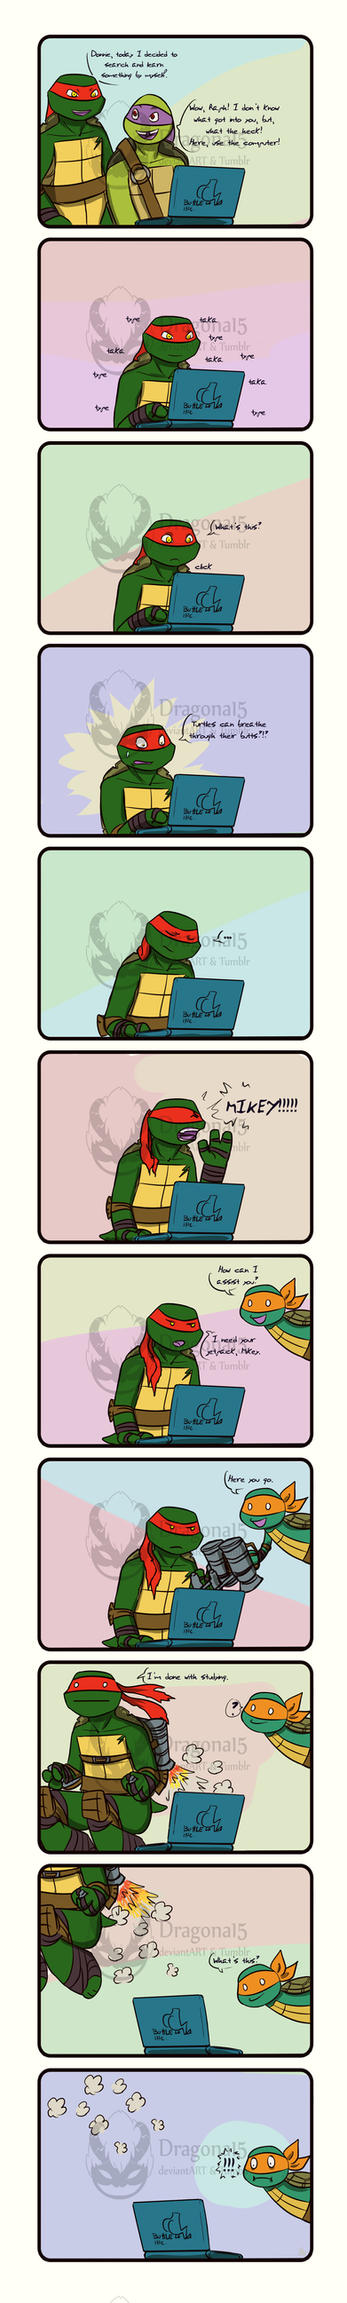 Tmnt Learning with Raph about turtles by Dragona15